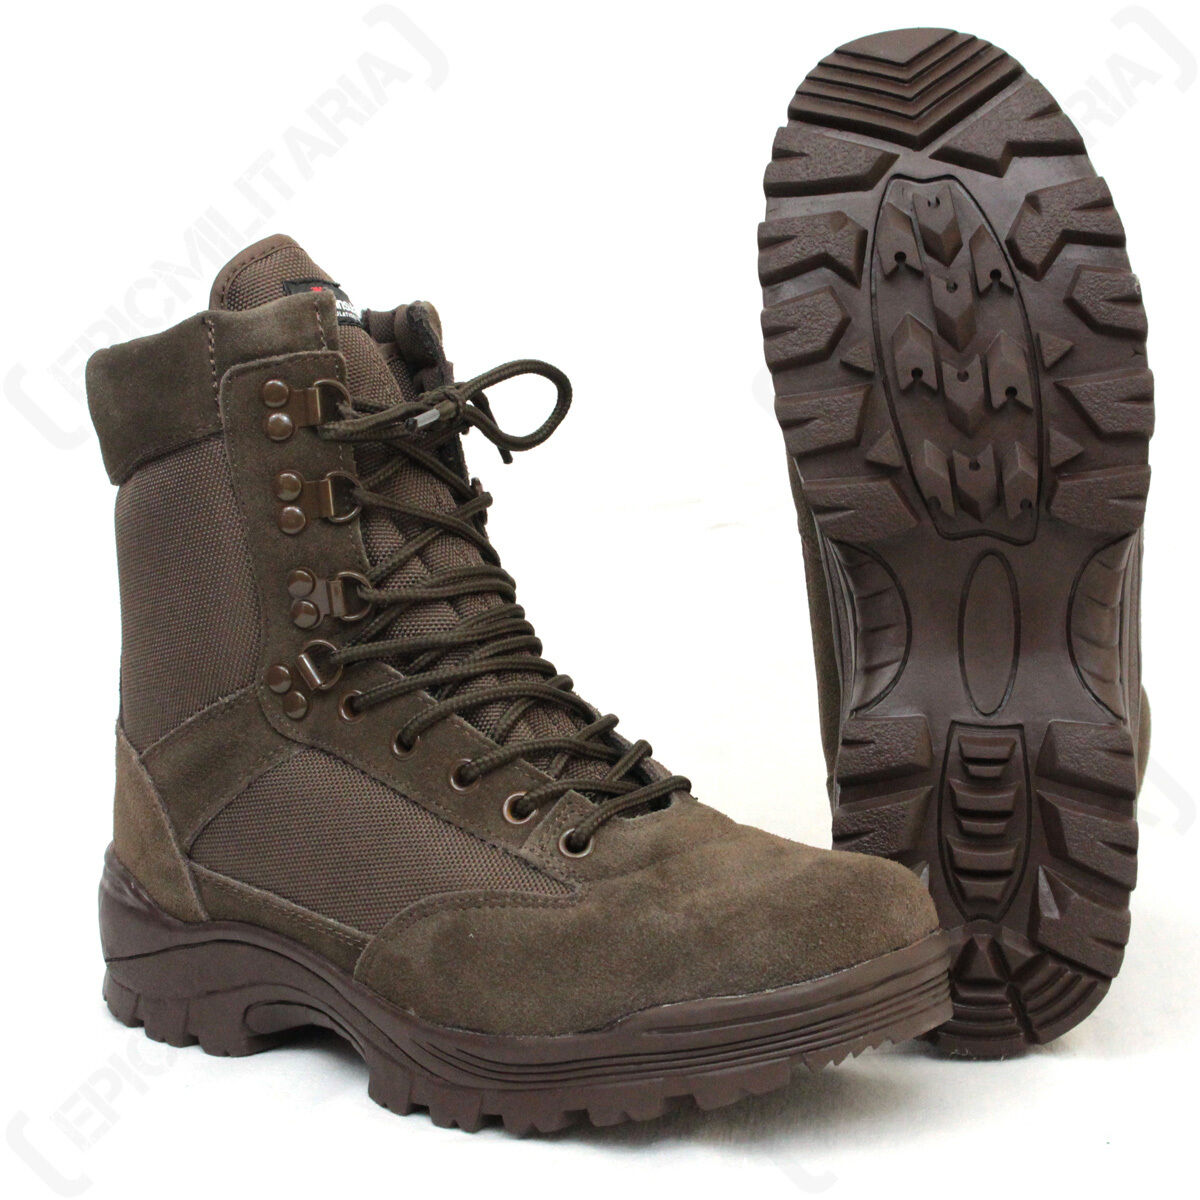 Brown Tactical Army Boot with YKK Zipper - Boots Shoes Military Outdoor Army New